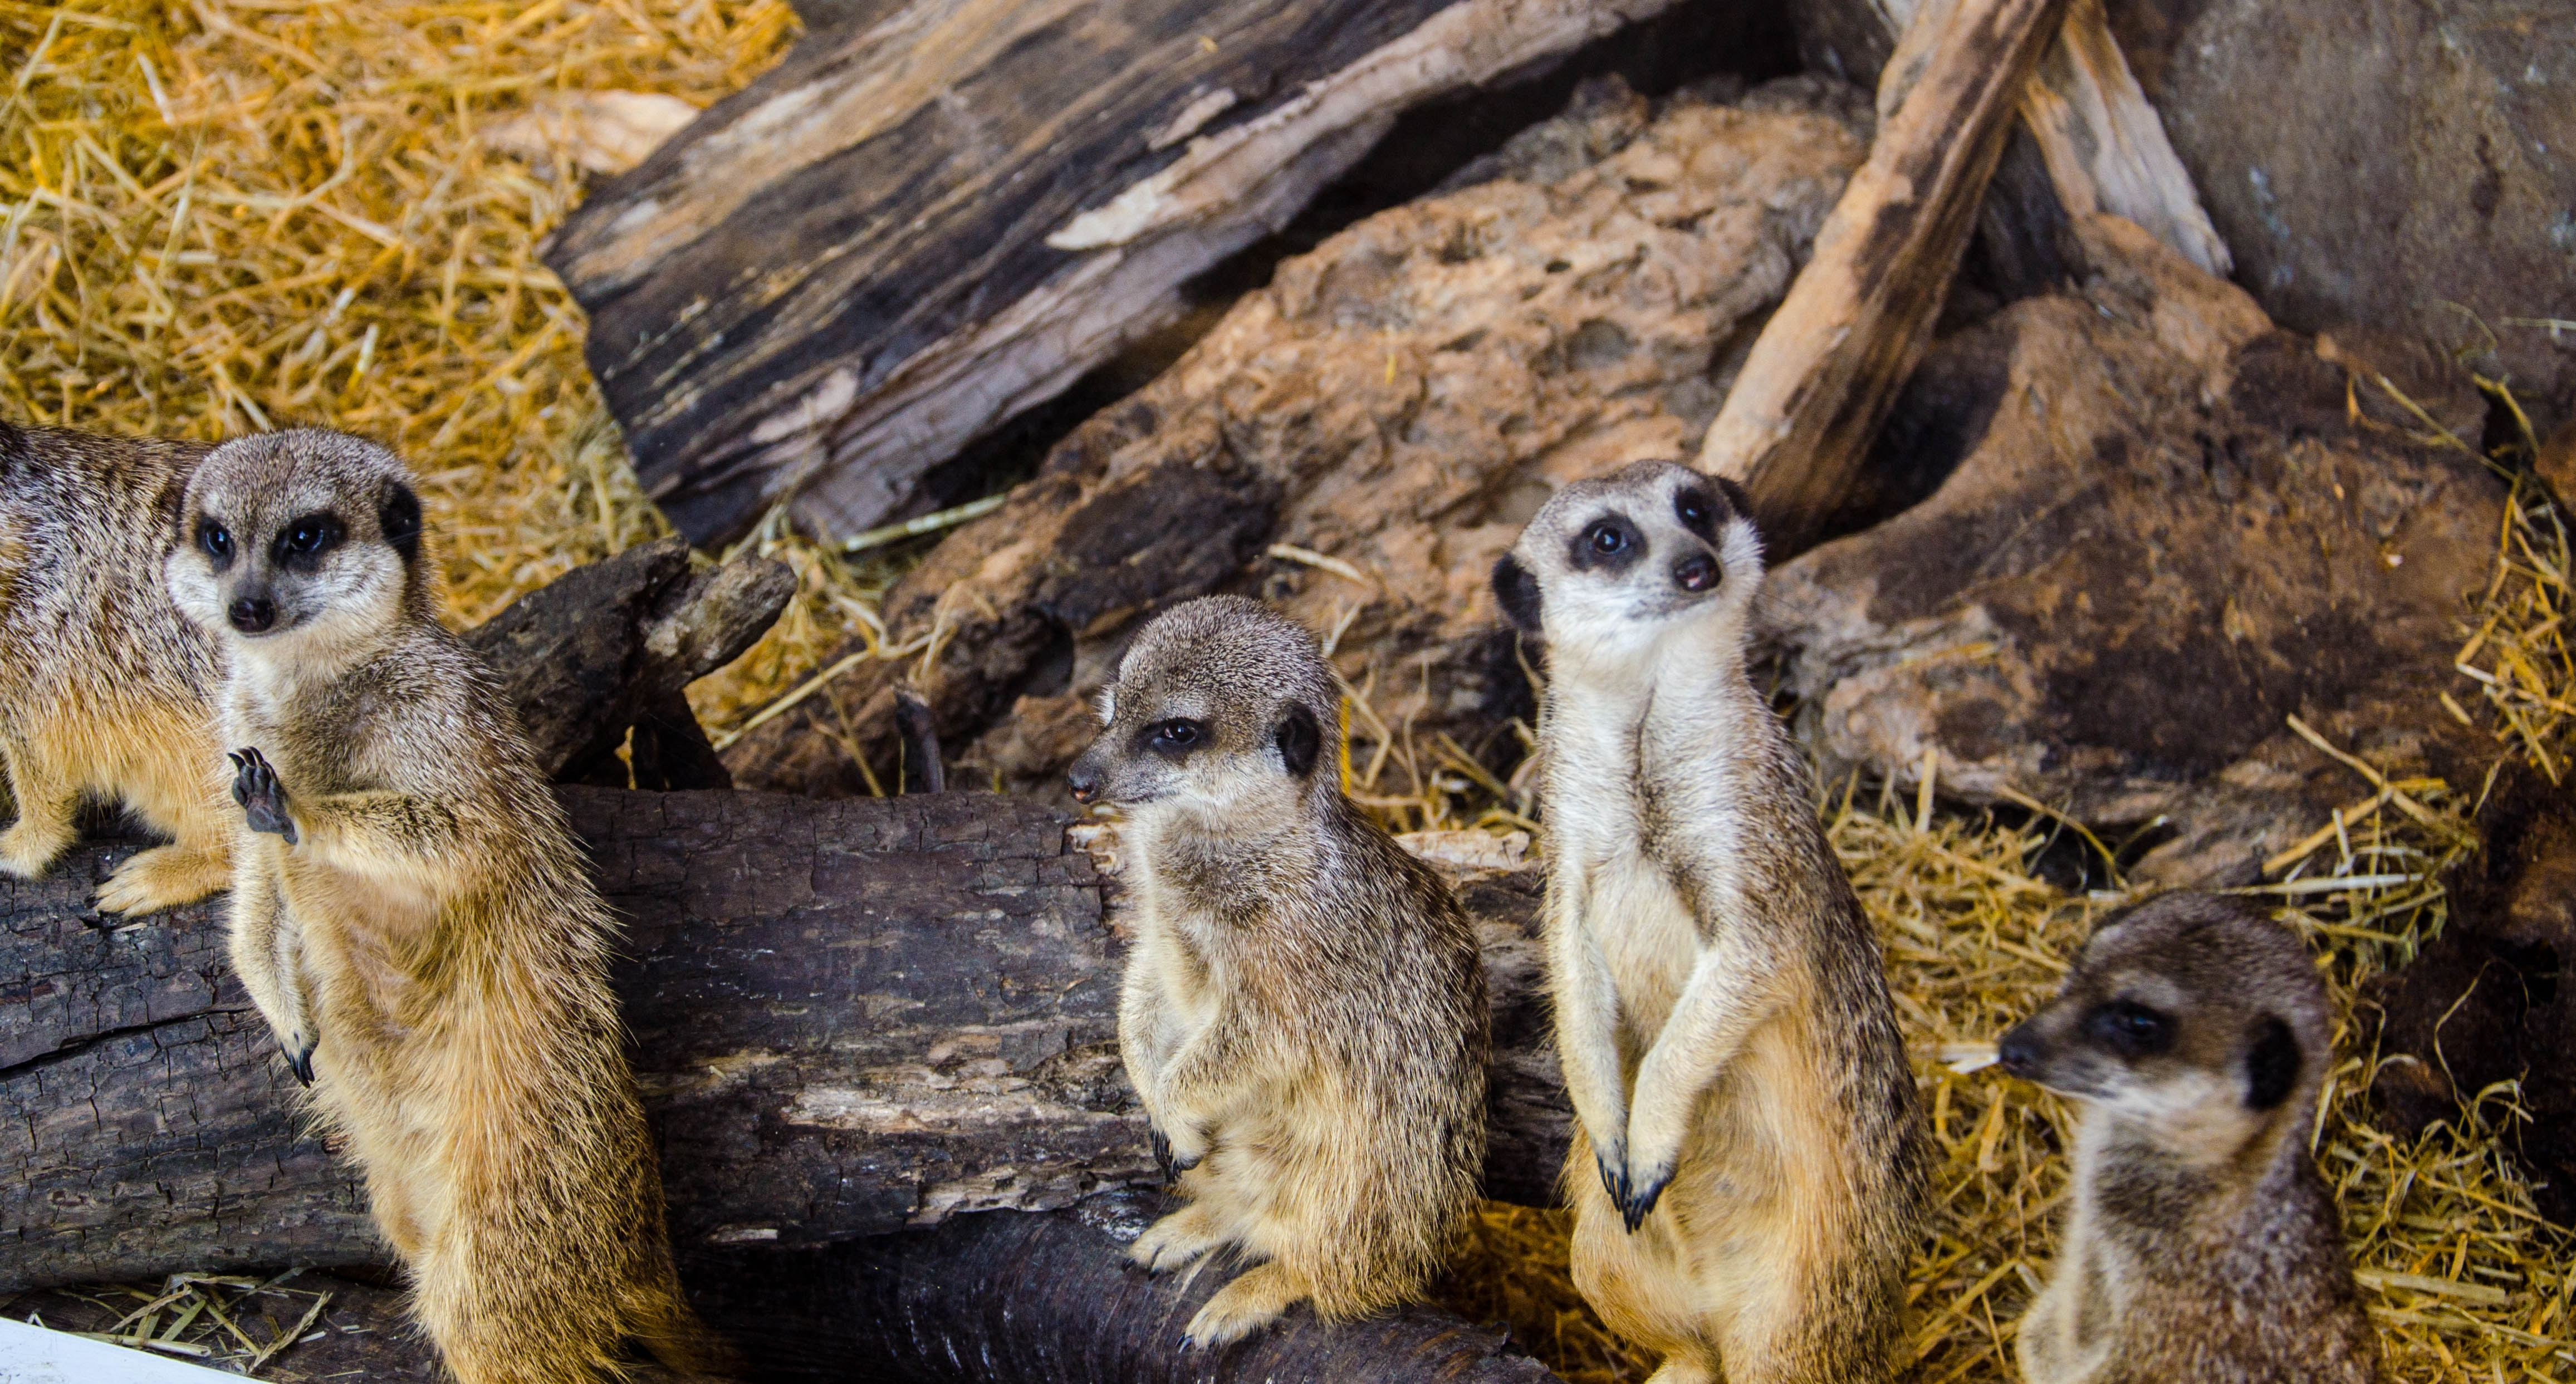 Four Animal on Burnt Tree, Nature, Meerkats, Mammals, Outdoors, HQ Photo